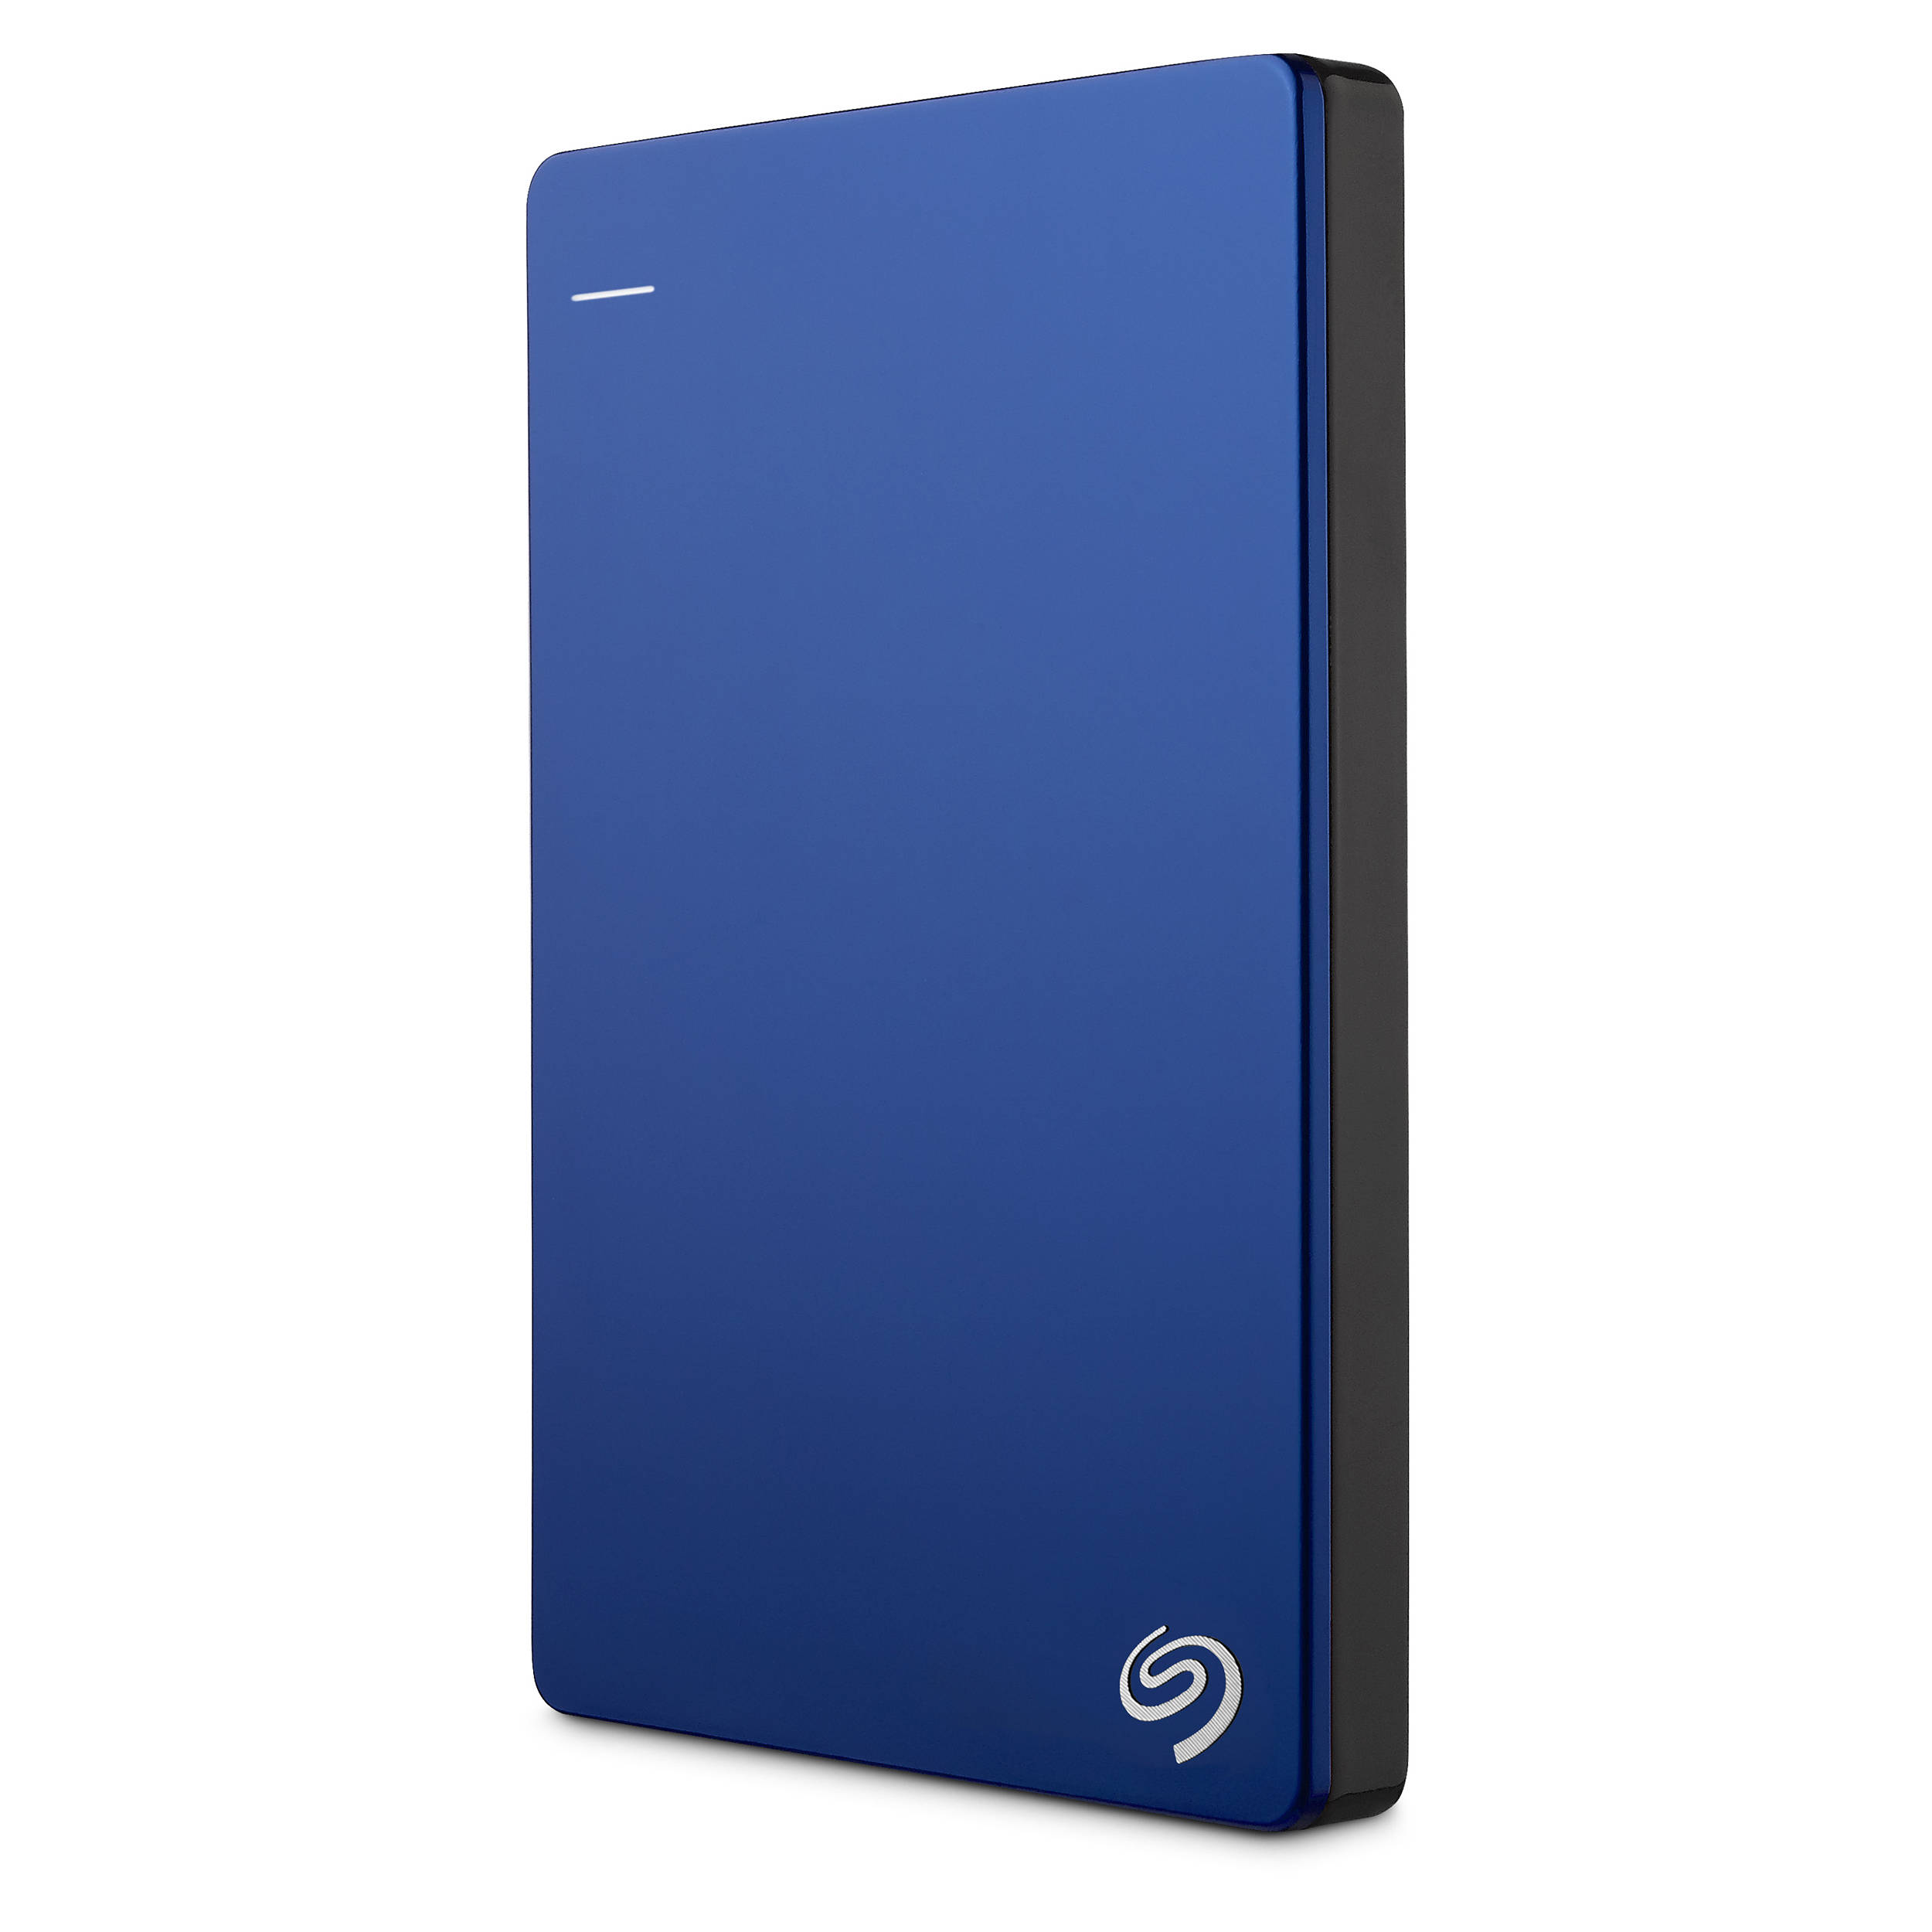 Cool features included with all Backup Plus for Mac portable drives